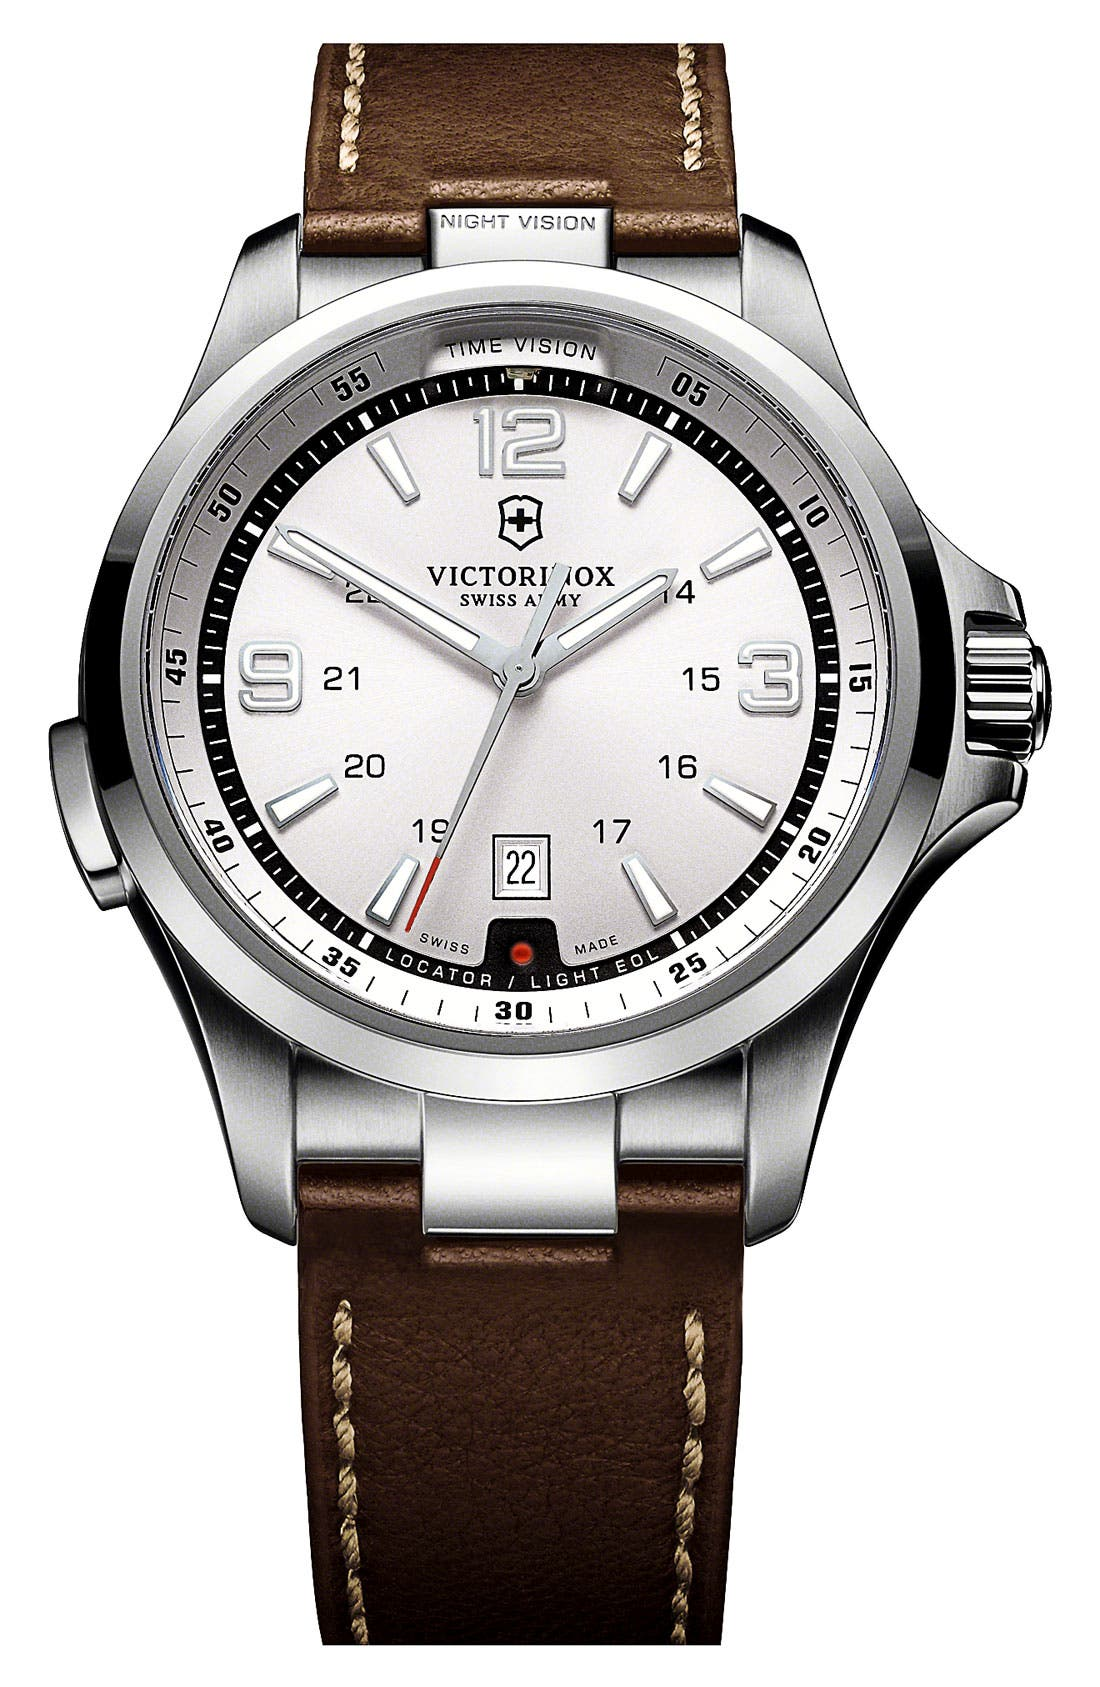 Alternate Image 1 Selected - Victorinox Swiss Army® 'Night Vision' Leather Strap Watch, 42mm